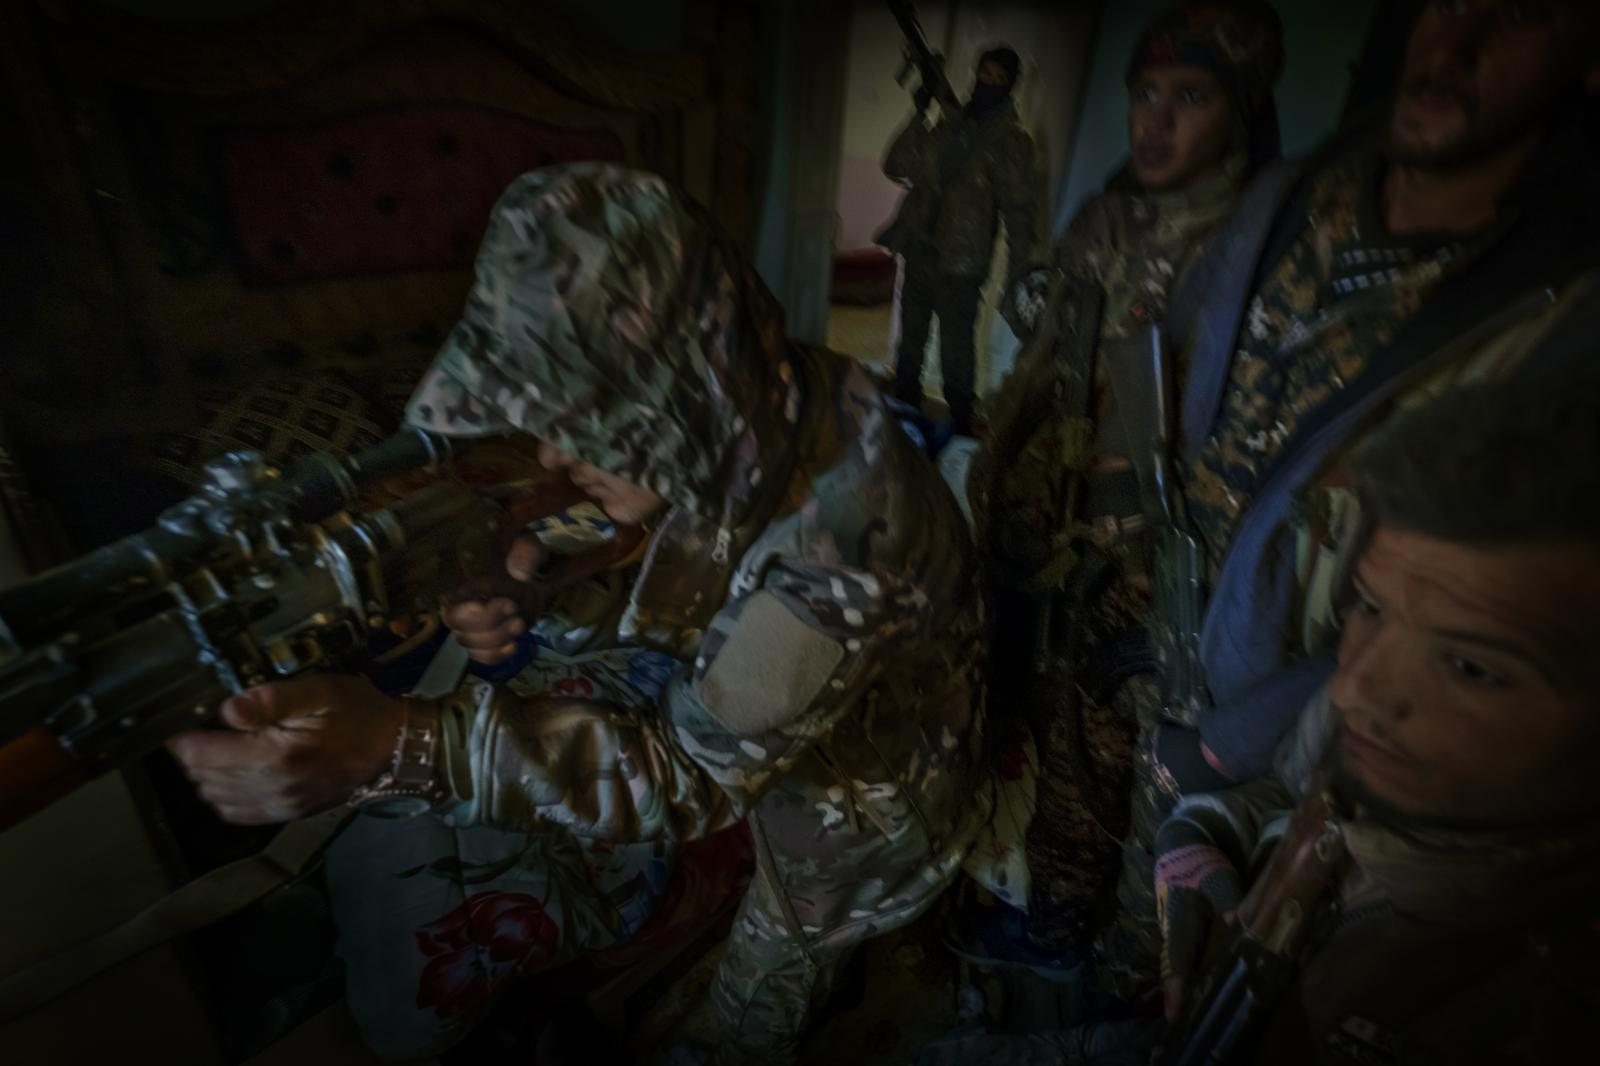 Members of the Syrian Democratic Forces (SDF) with a sniper, in a house situated on the front line in Deir ez-Zor, during the final battle before the fall of the ISIS caliphate (Syria).